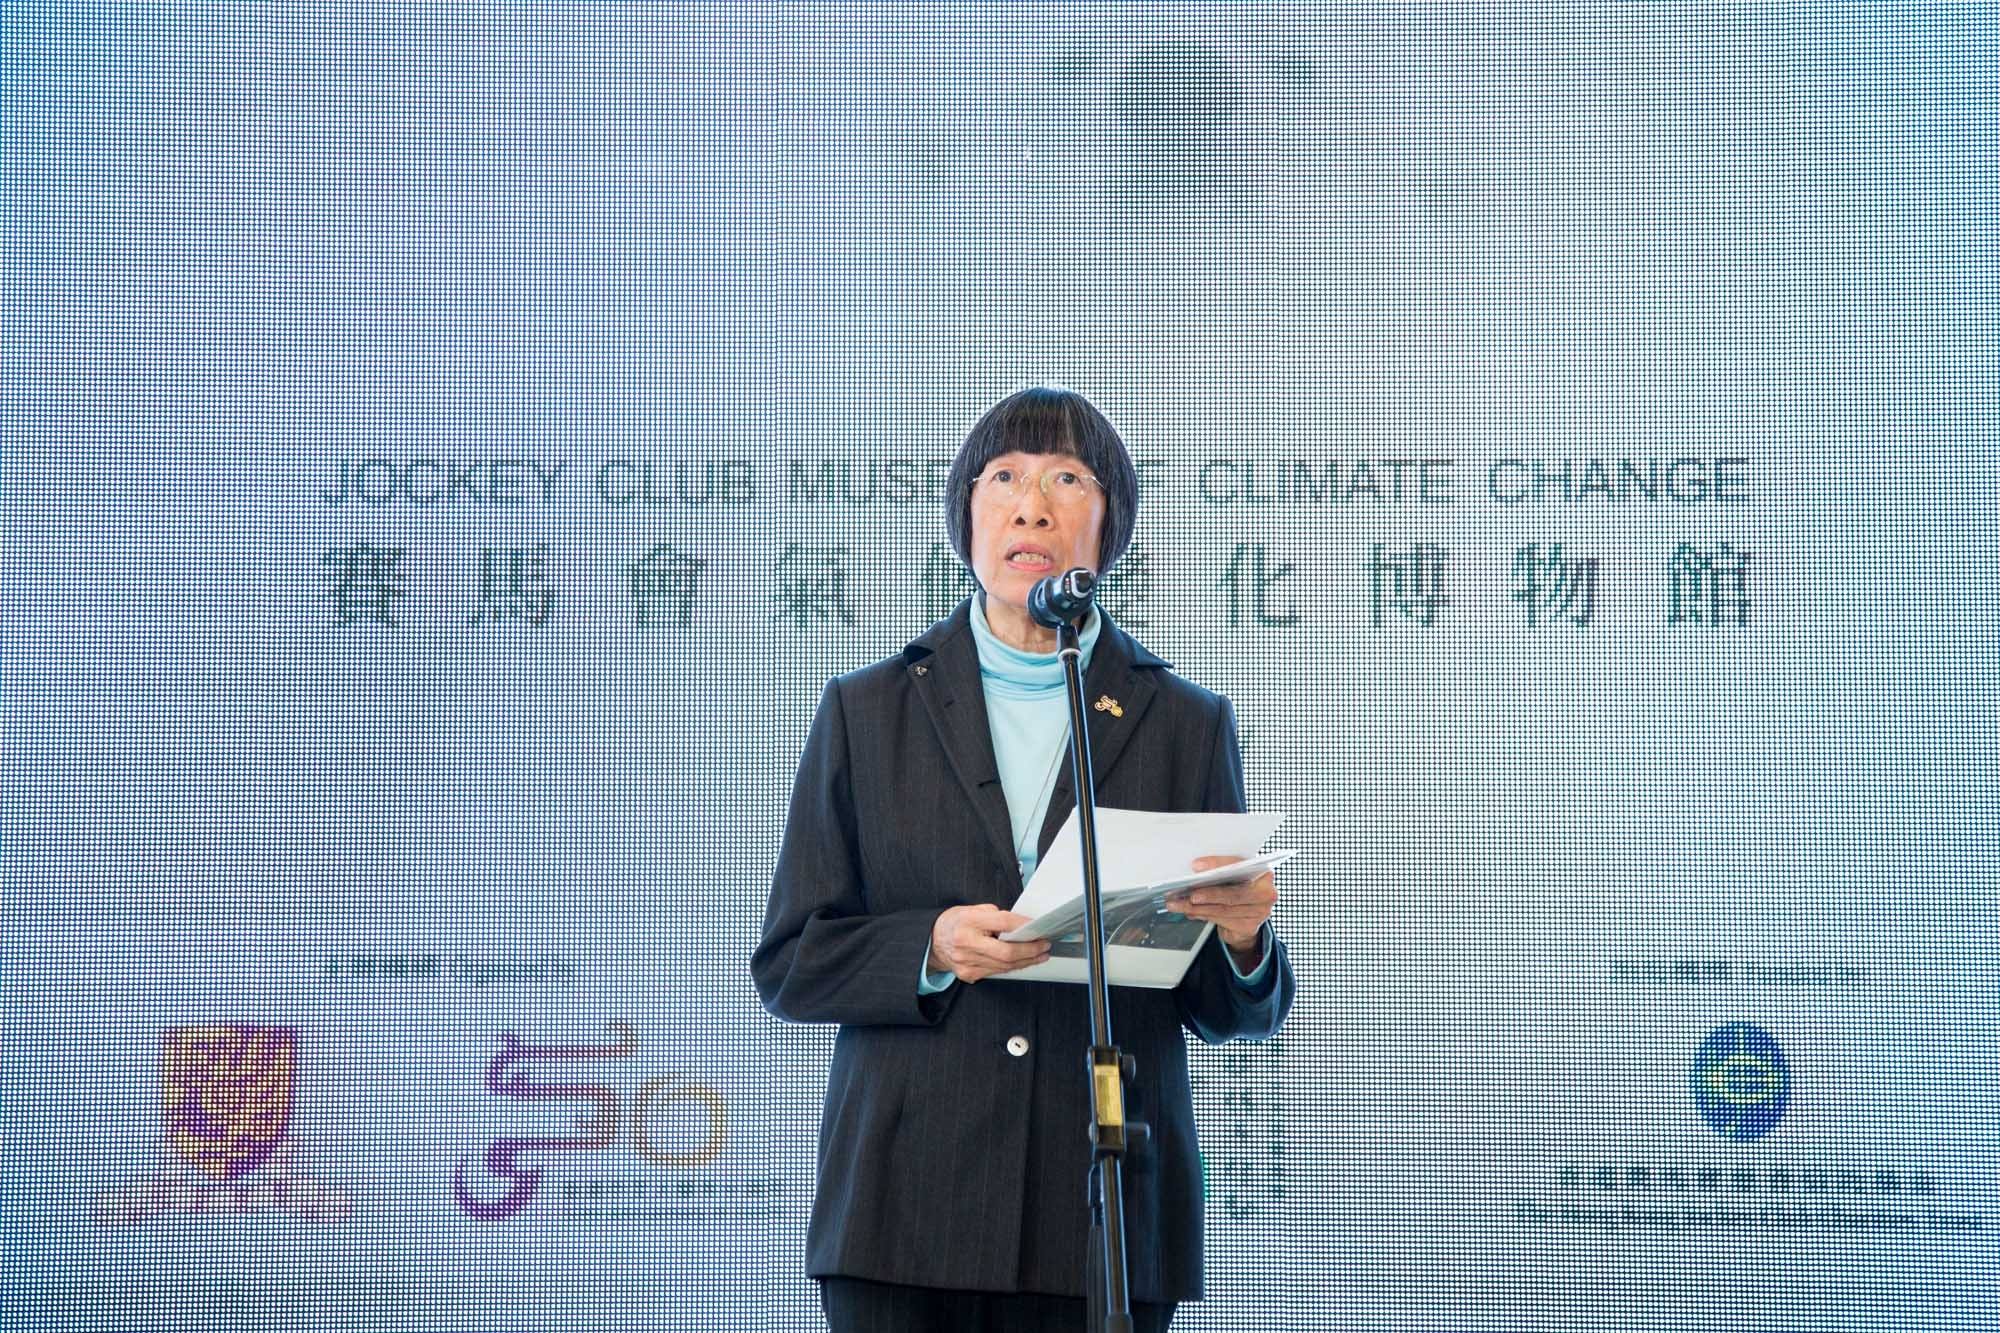 Dr Rebecca LEE, Founder of Polar Museum Foundation, gives a speech.